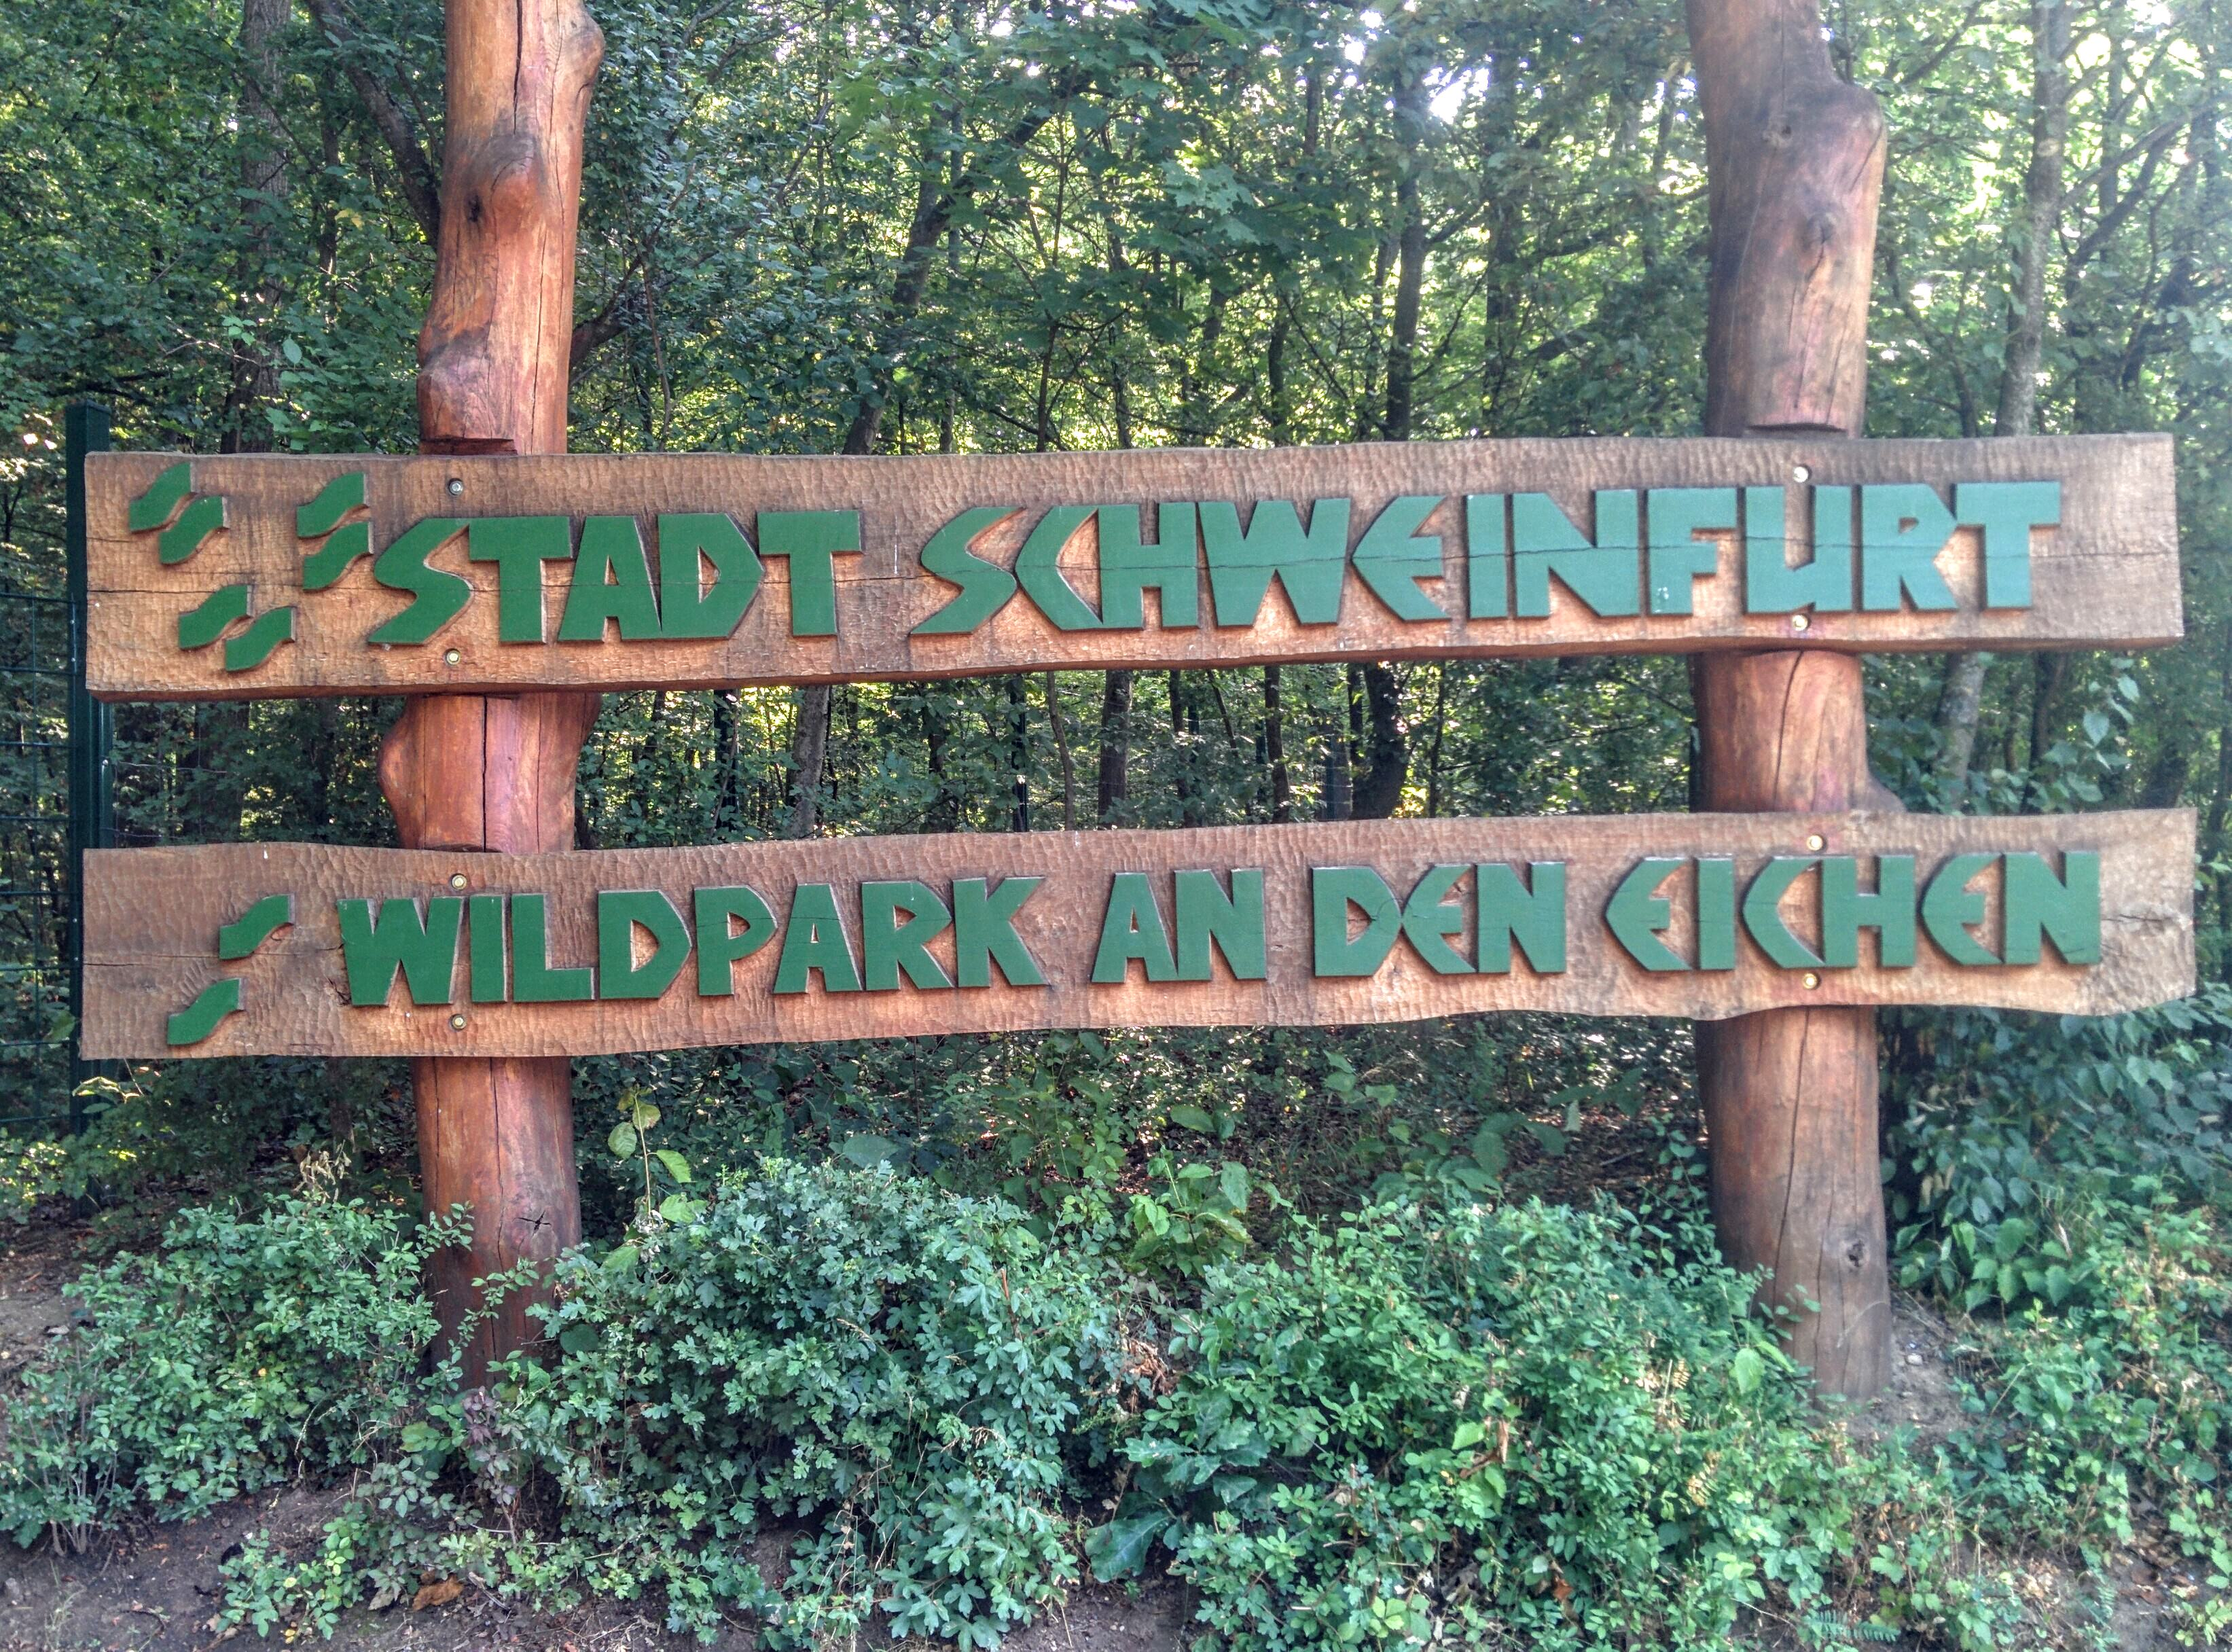 Wildpark sign. | A Day in the Life: Expat in Small Town Germany.